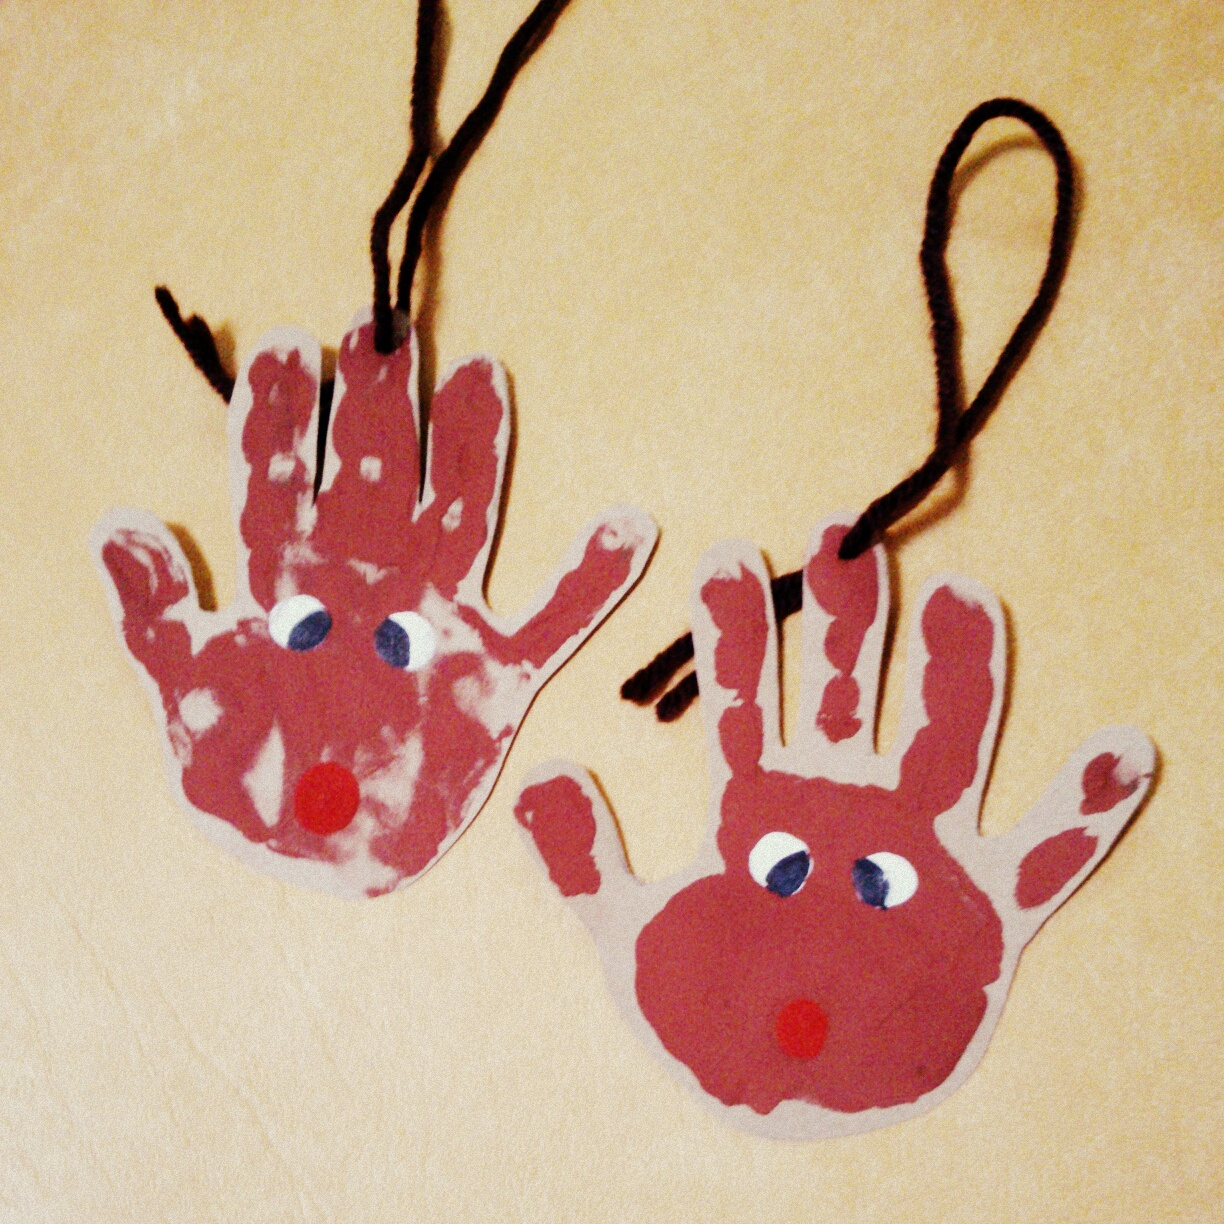 Today we received our gifts from my 2-year old nephew, Liam:  hand-made Christmas tree ornaments made with his hand print.  Cool!